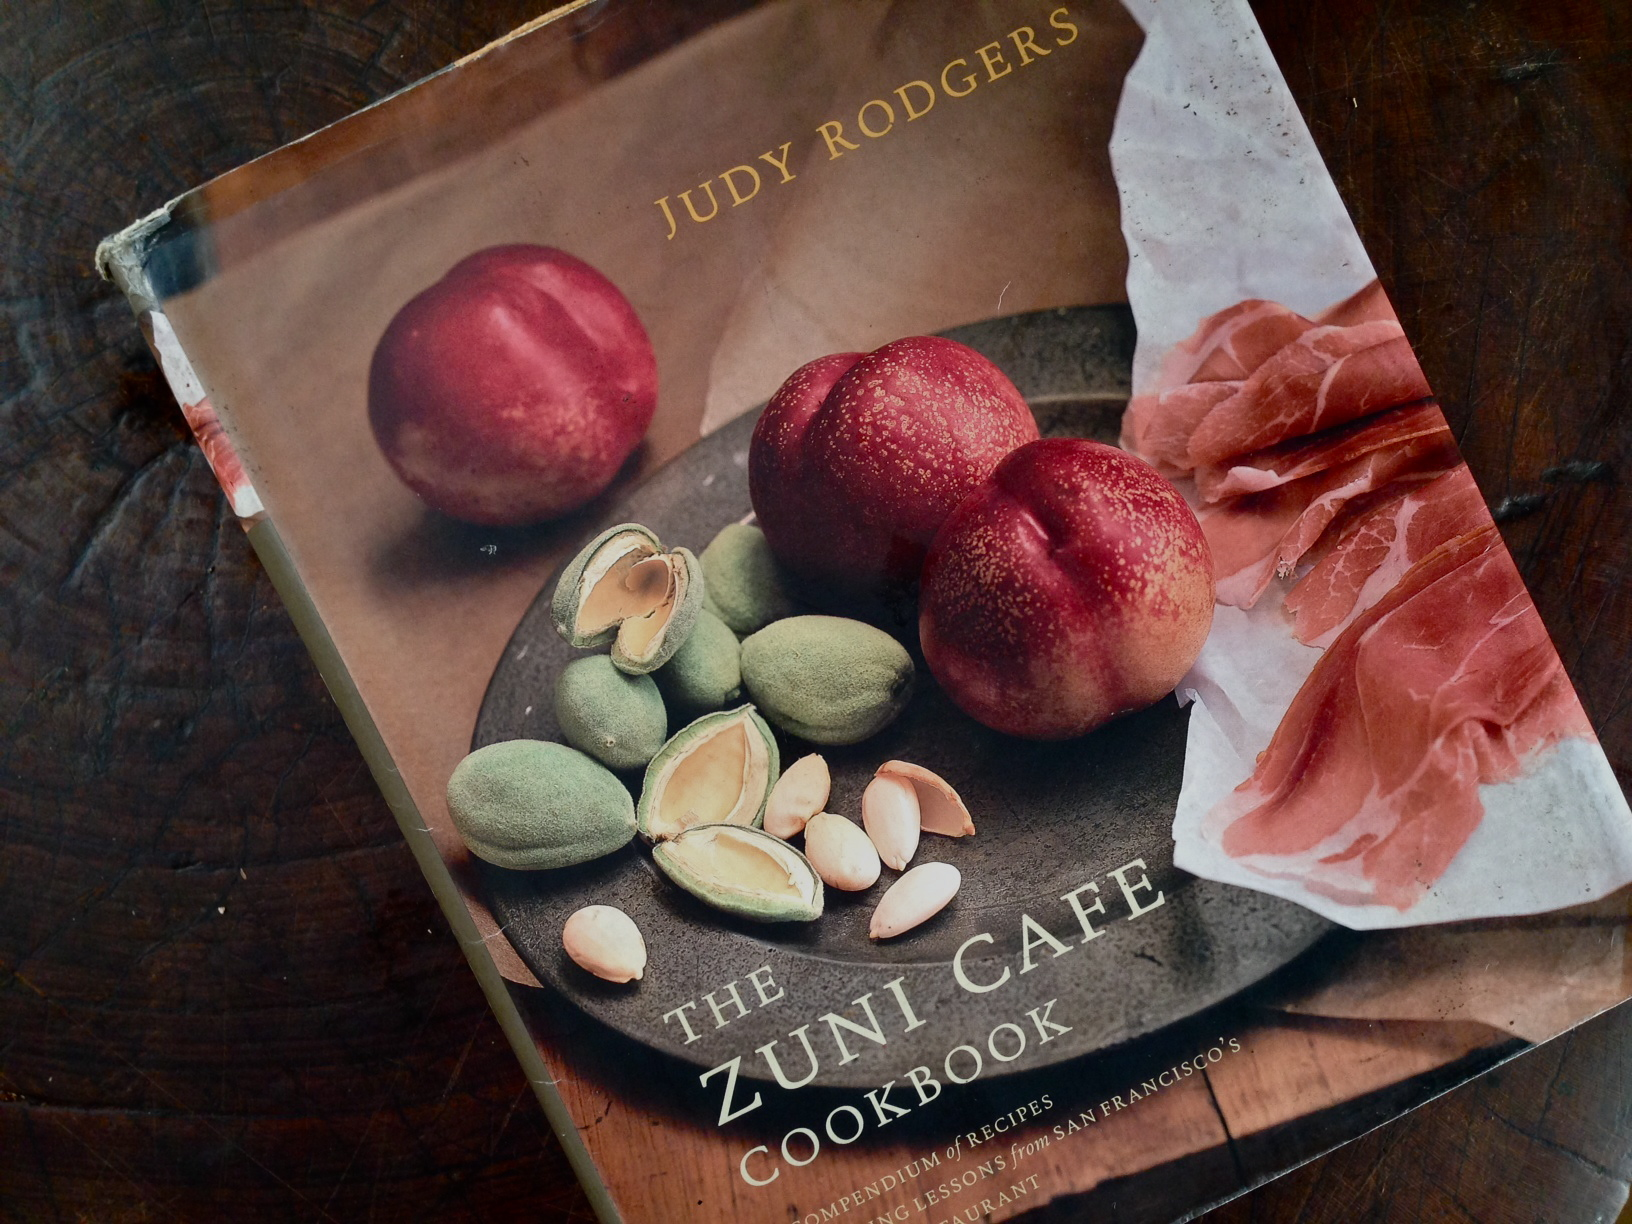 Our well-loved copy of the ZUNI Café Cookbook